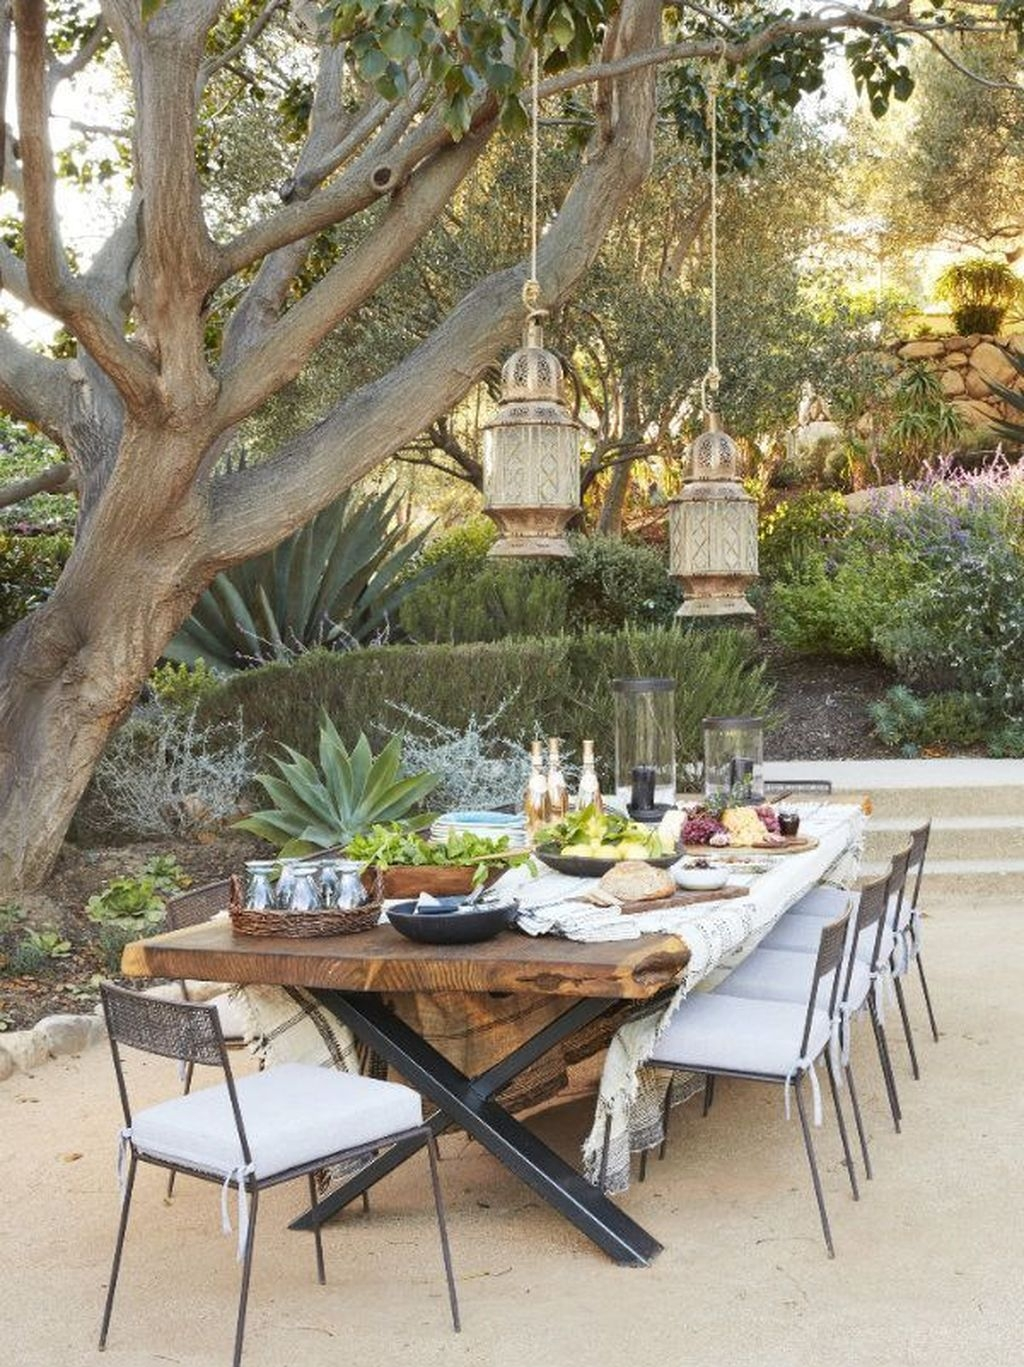 5 Ideas For the Perfect Al Fresco Dining Area best summer travel destinations for 2019 Best Summer Travel Destinations For 2019 5 Ideas For the Perfect Al Fresco Dining Area 01 best summer travel destinations for 2019 Best Summer Travel Destinations For 2019 5 Ideas For the Perfect Al Fresco Dining Area 01